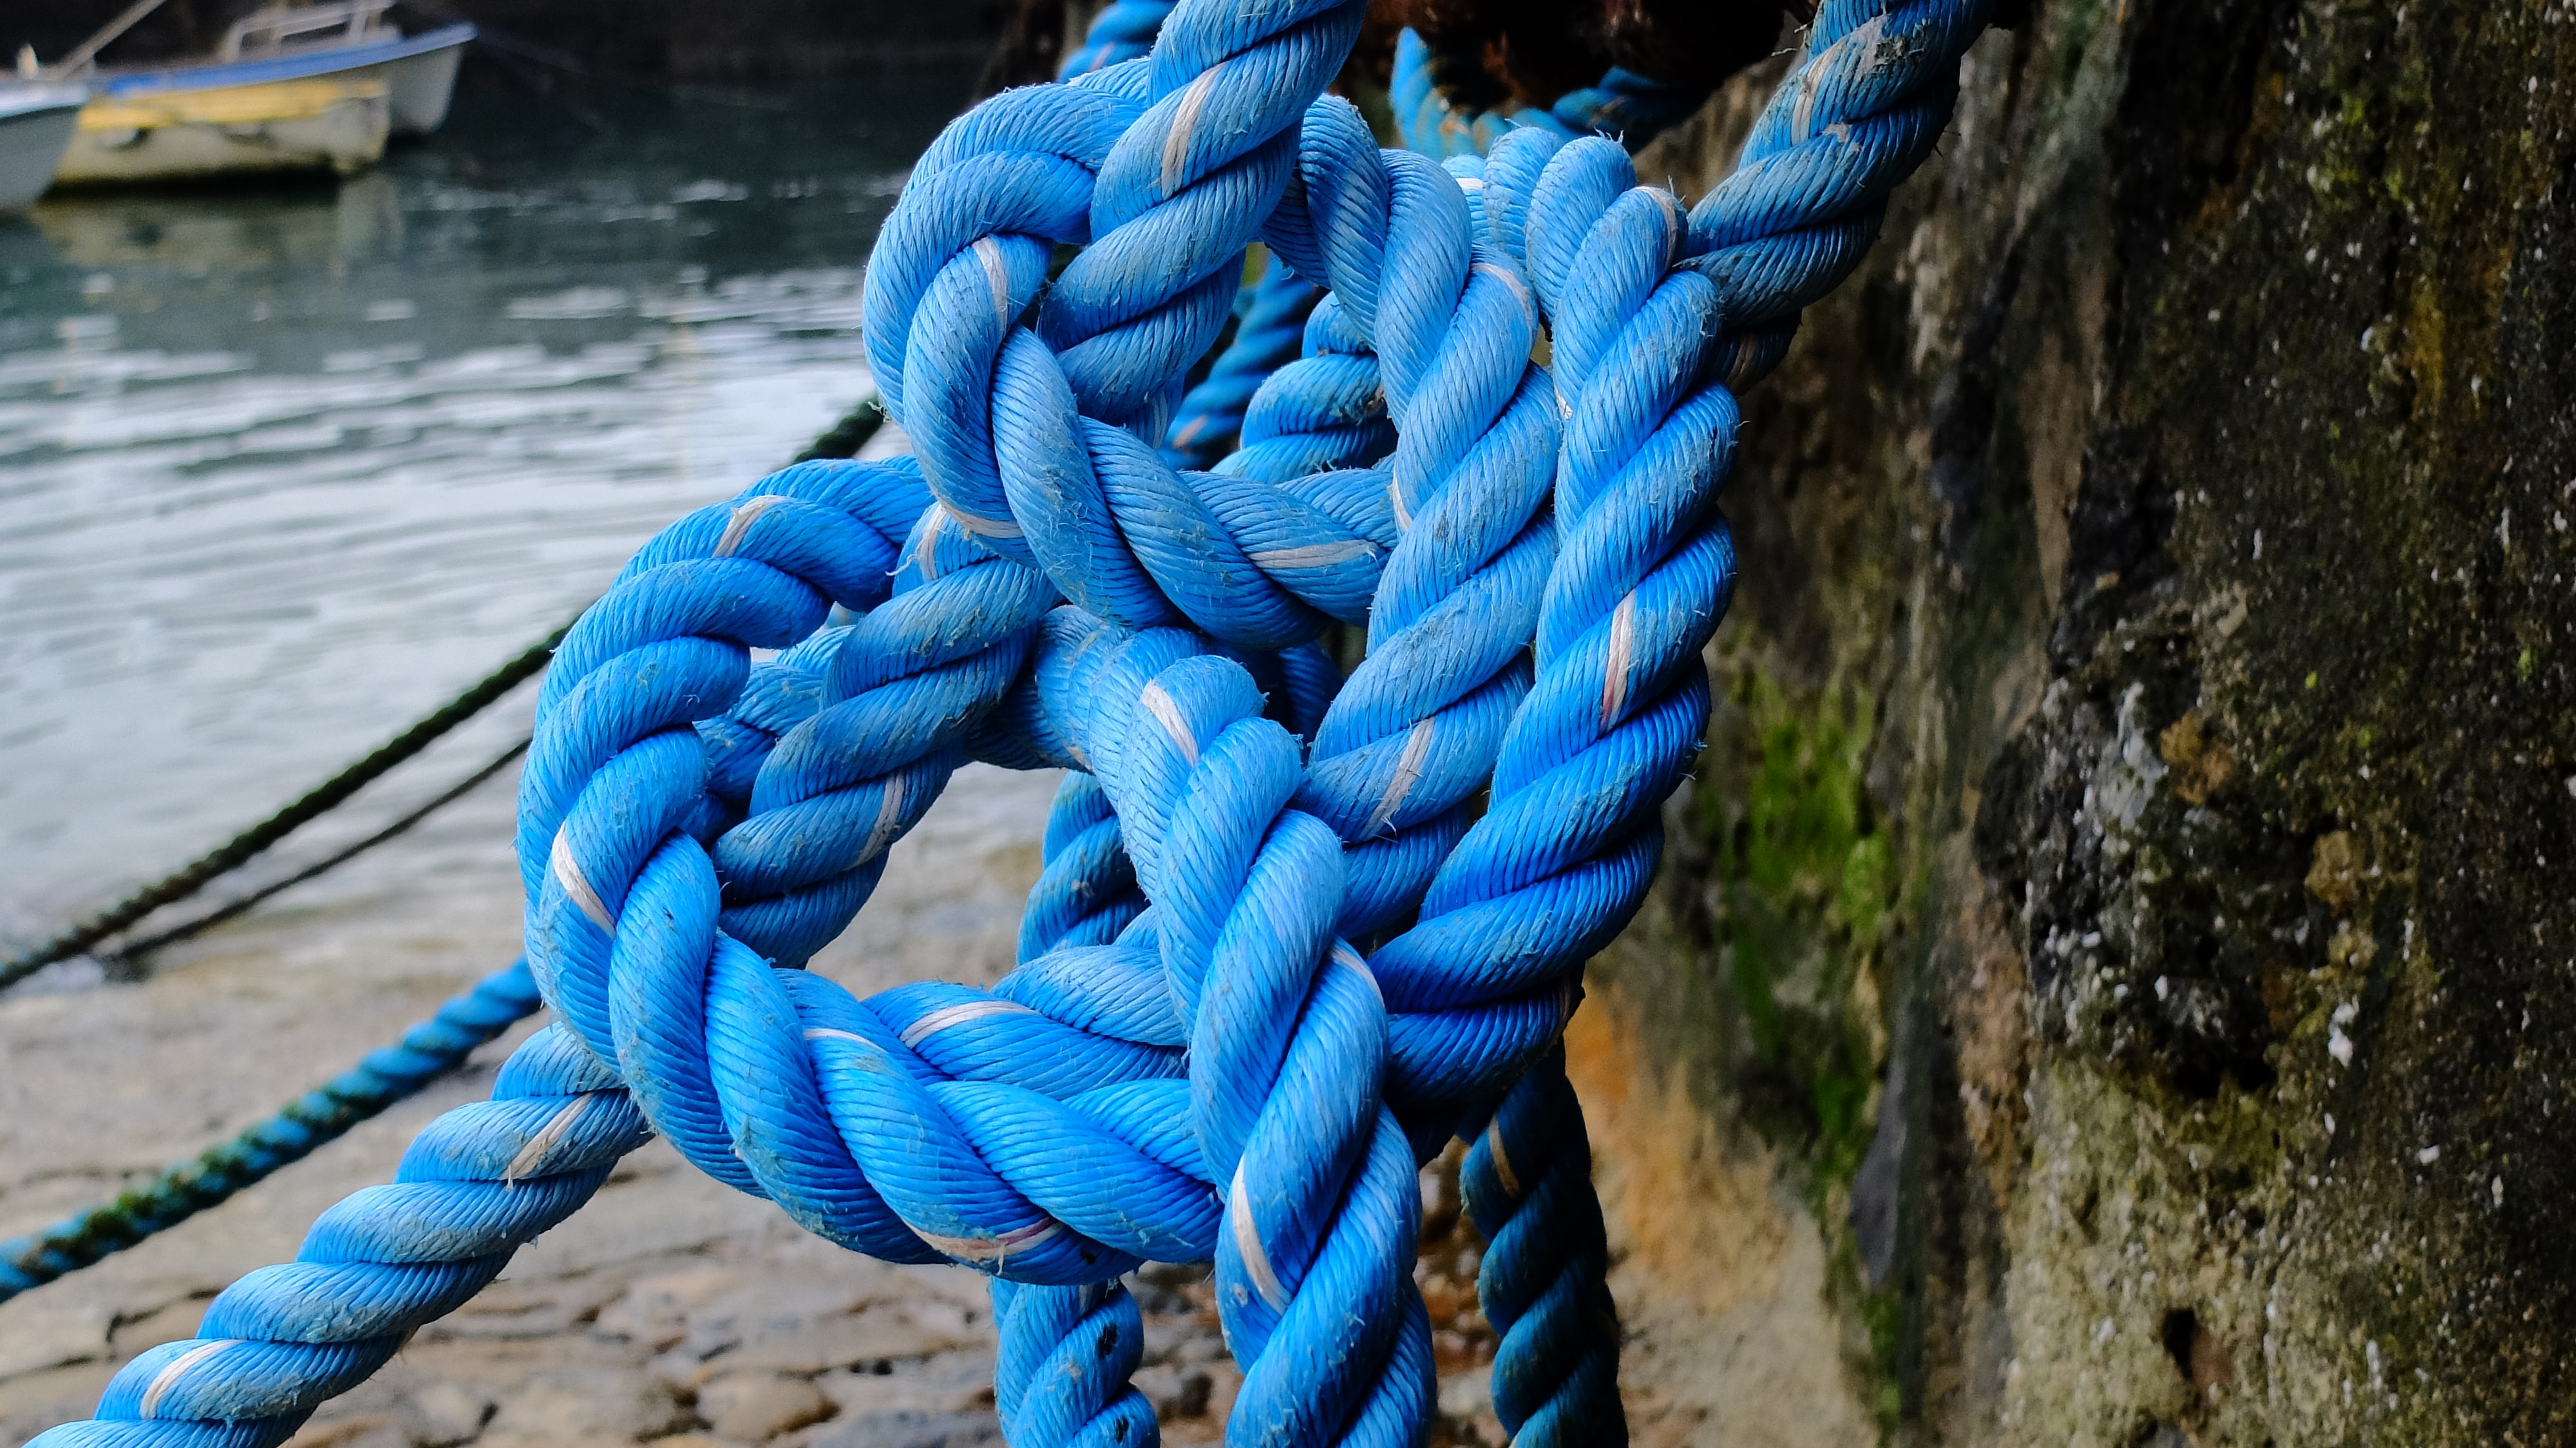 Thick blue boat rope tied in a knot at the beach in Mundaka